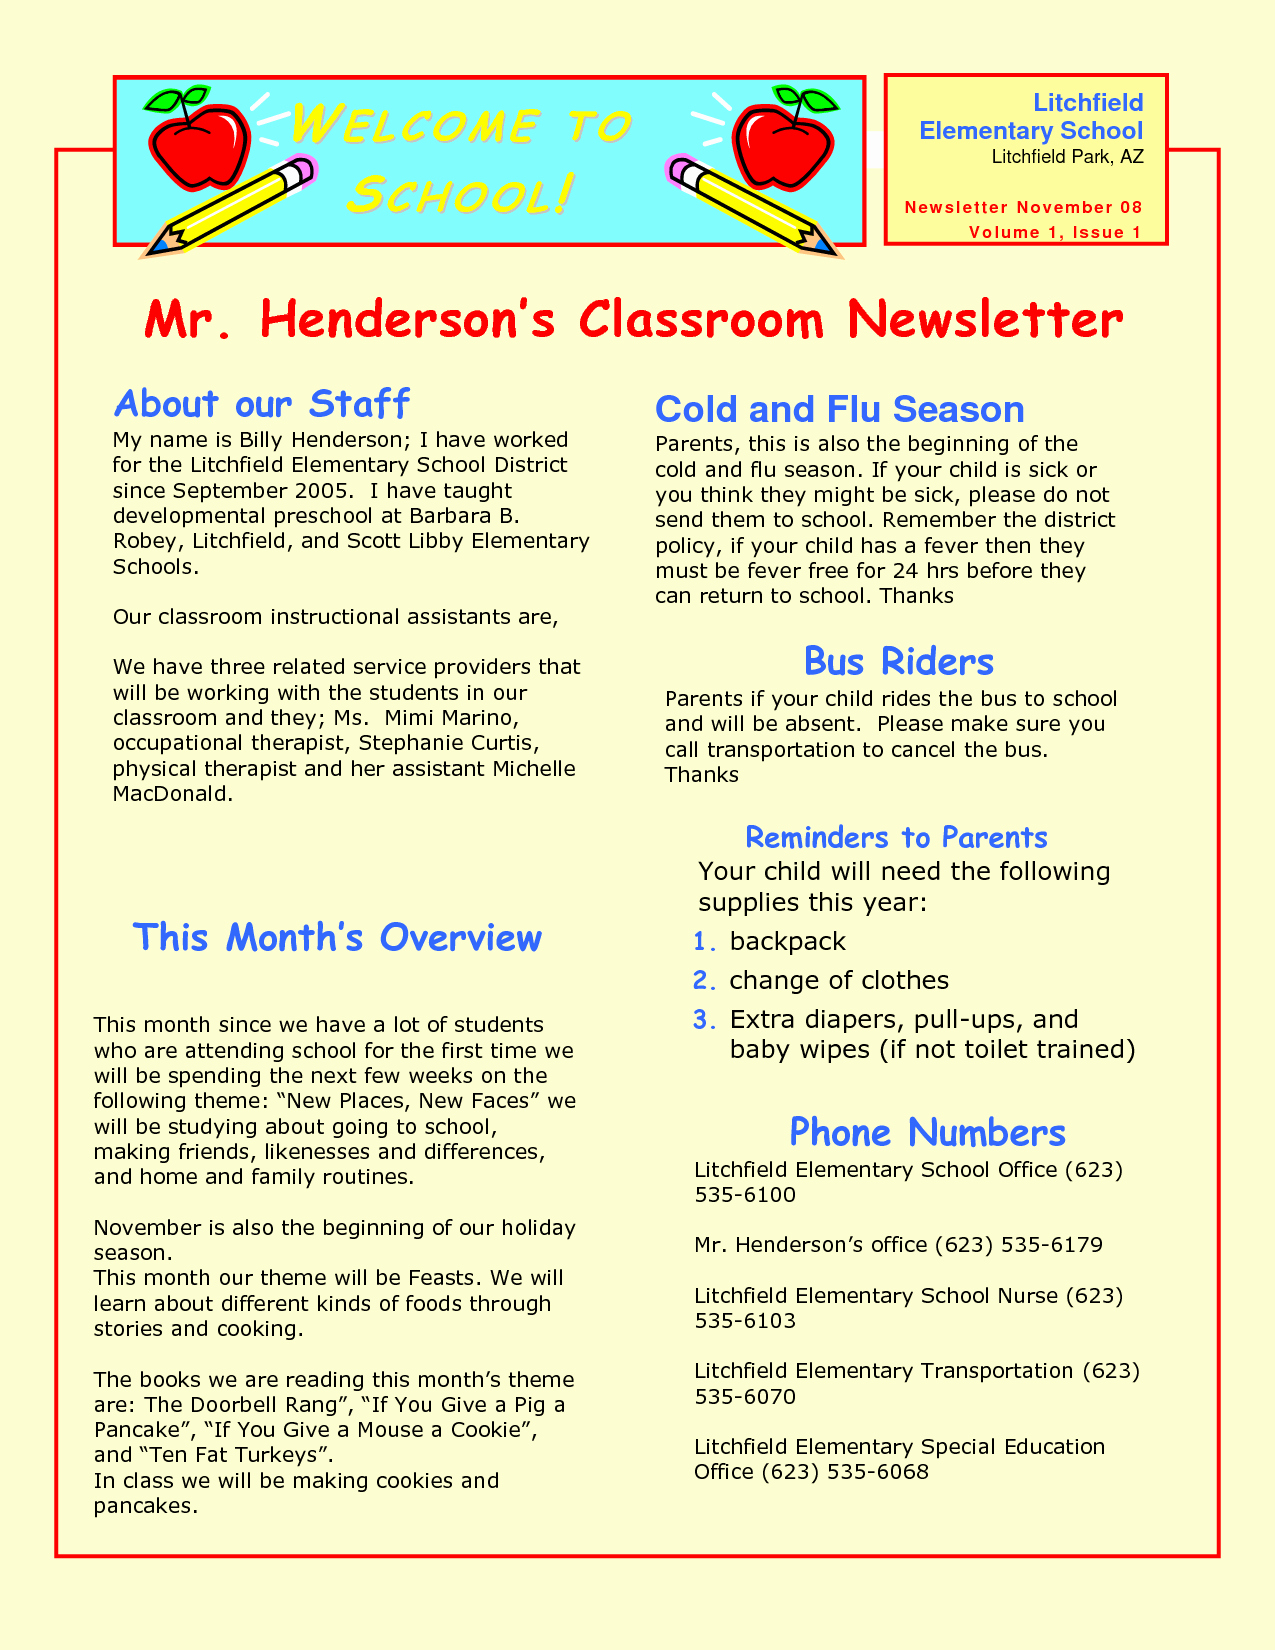 Newsletter for Preschool Parents Template Fresh Preschool Newsletter Samples